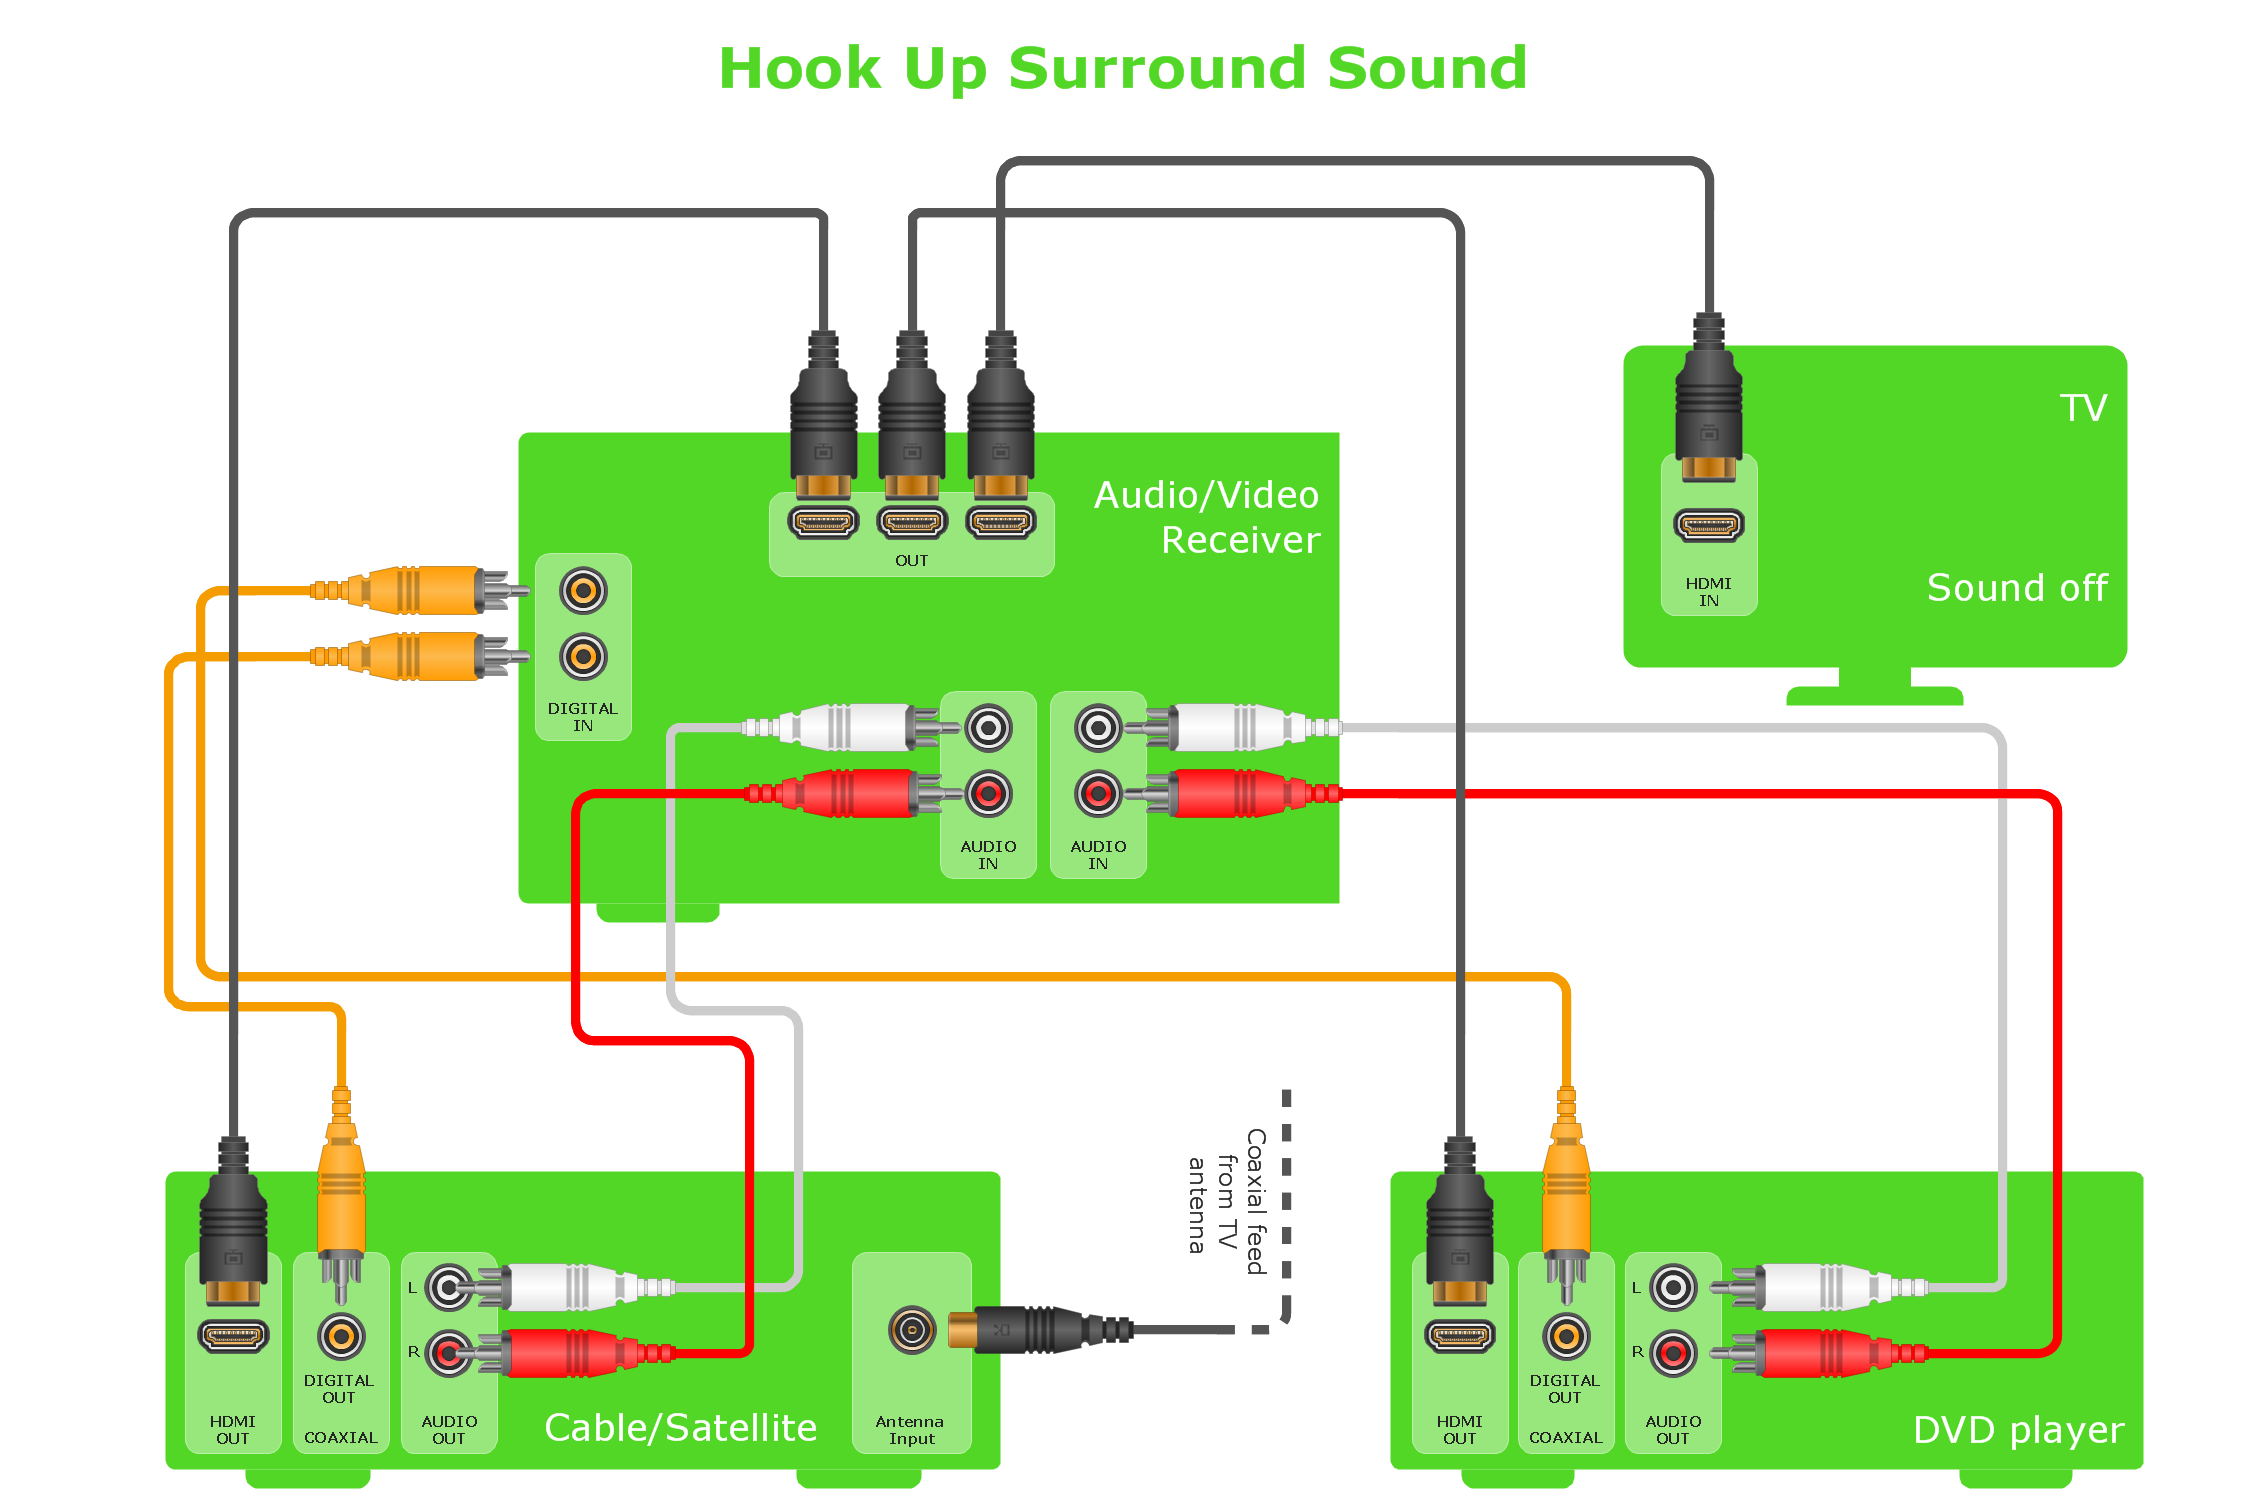 Audio And Video Connections Explained Connector House Trailer Wiring Diagrams Hookup Diagram Home Entertainment System With Surround Sound